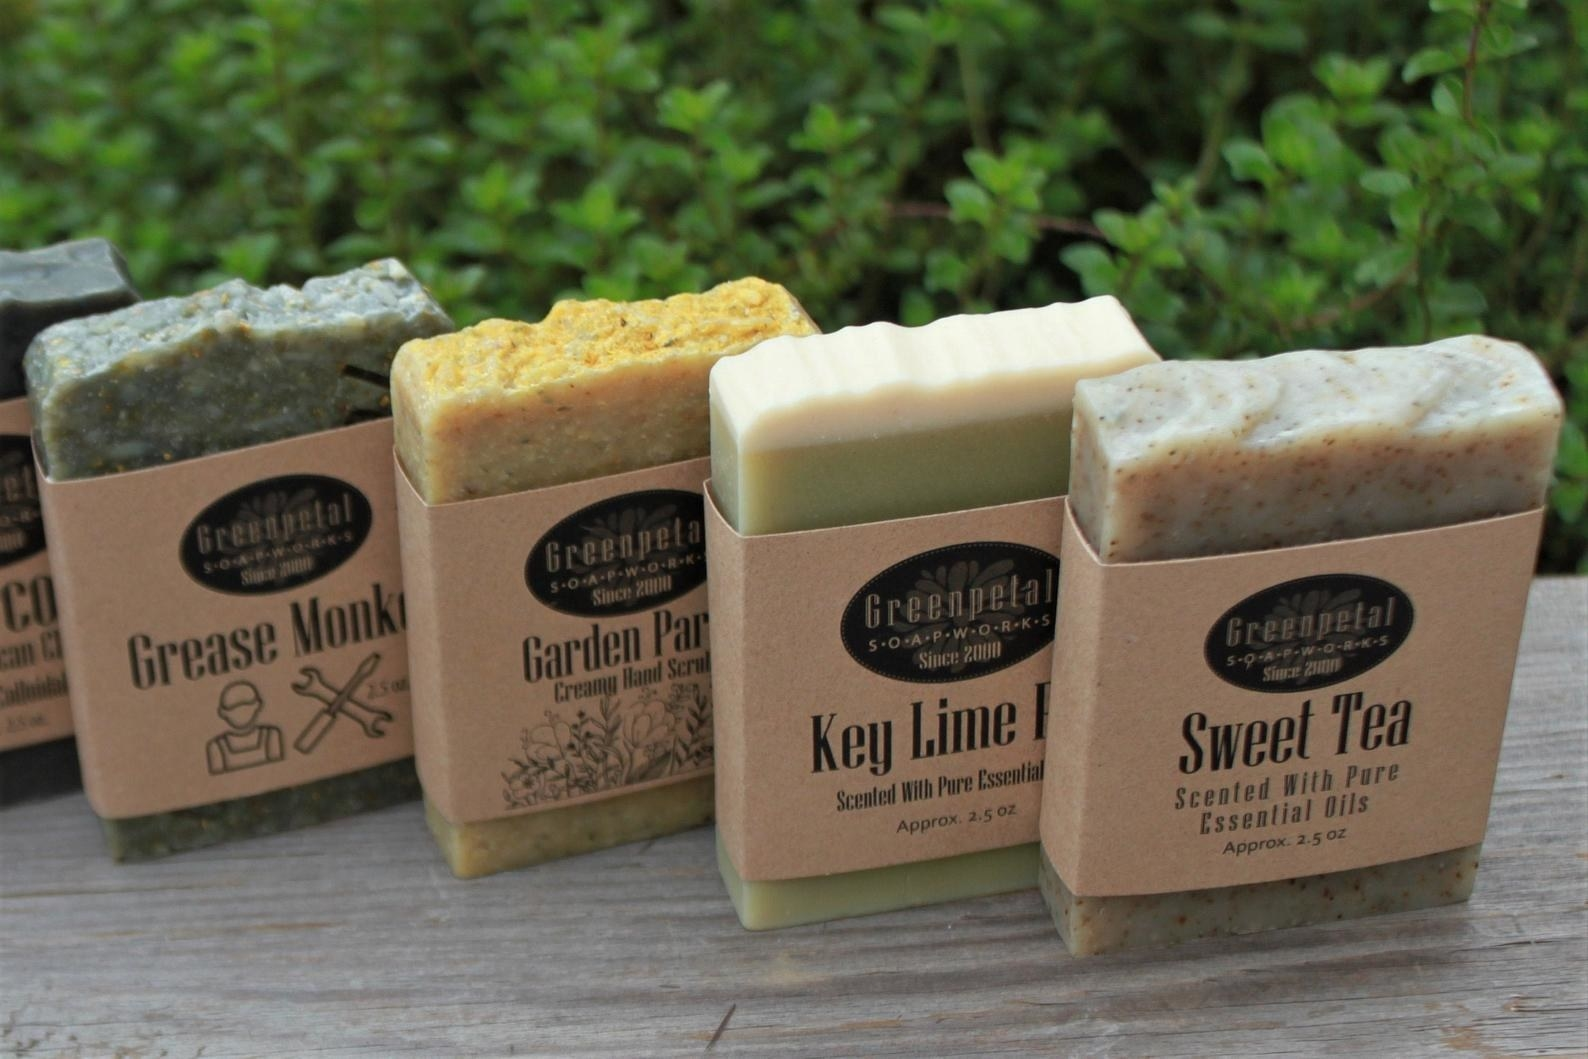 four soaps lined up that are named grease monkey, garden party, key lime, and sweet tea